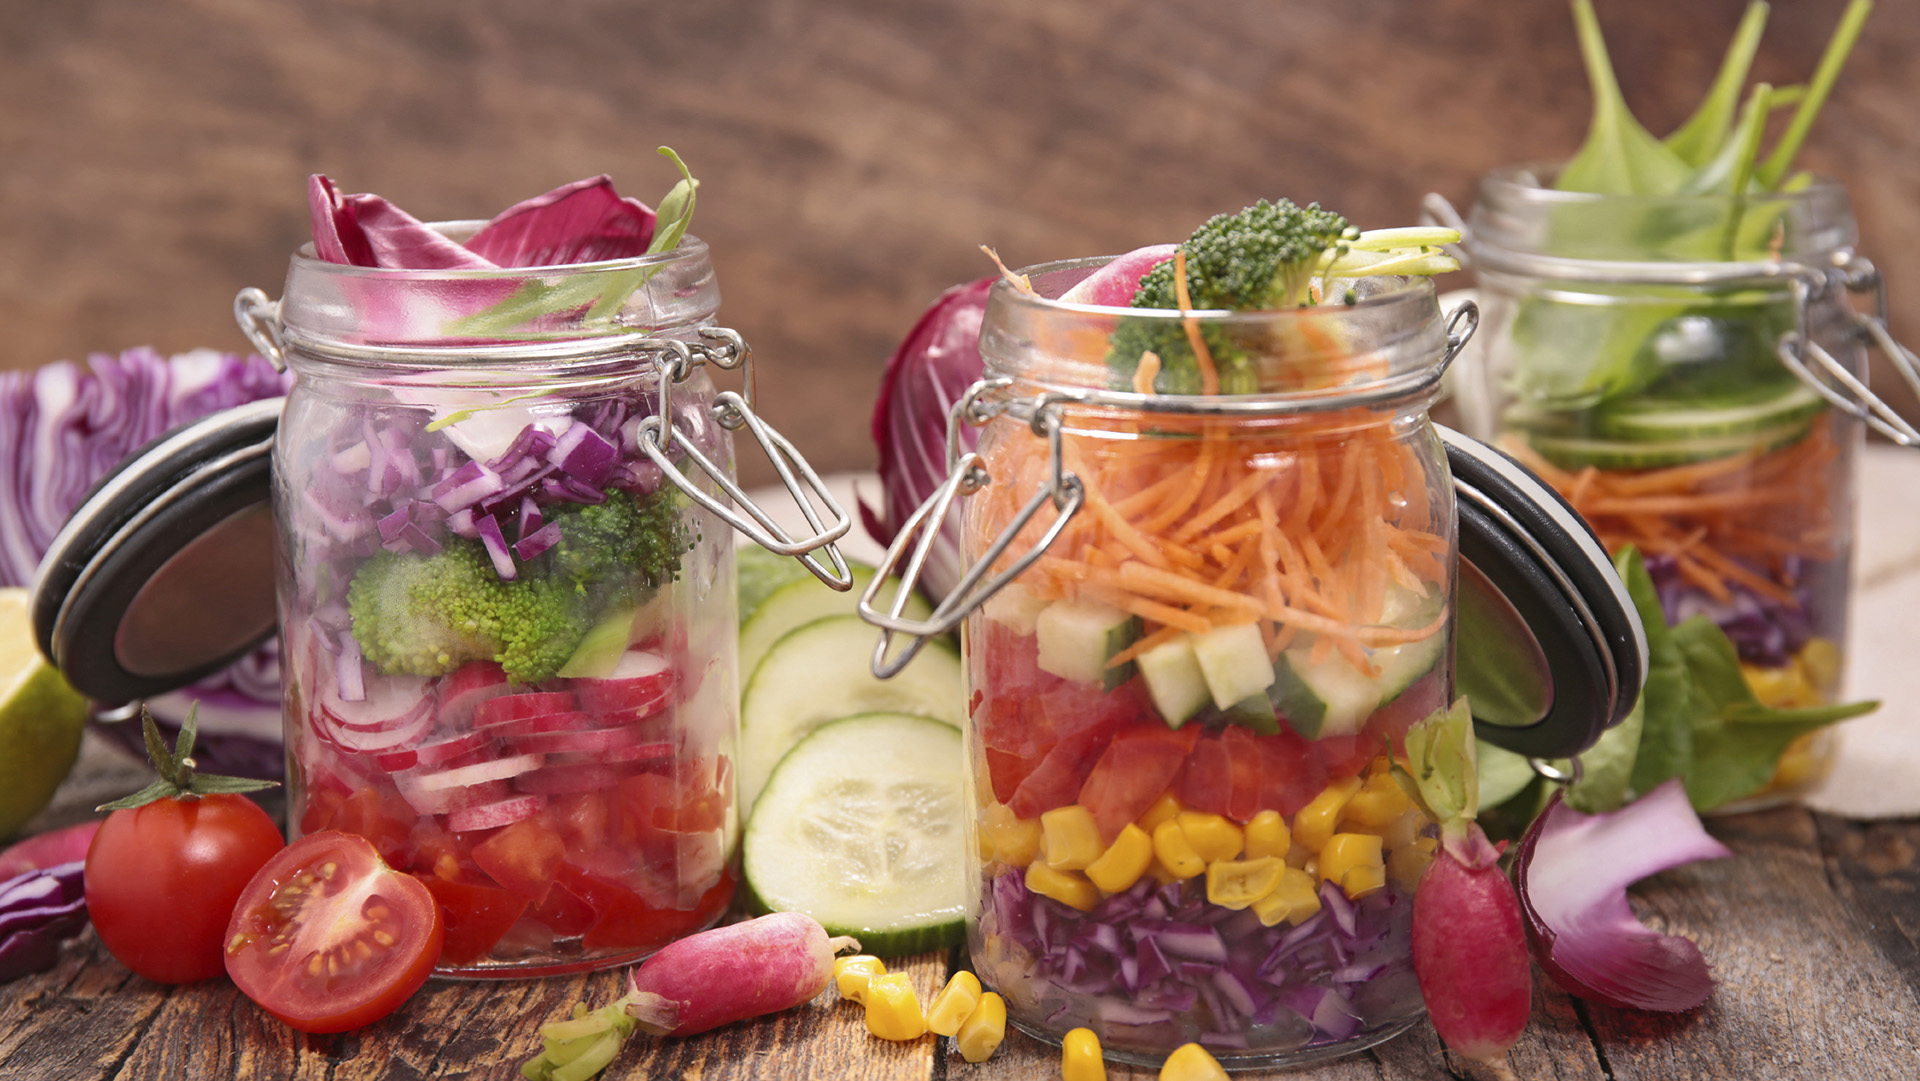 salad in jar